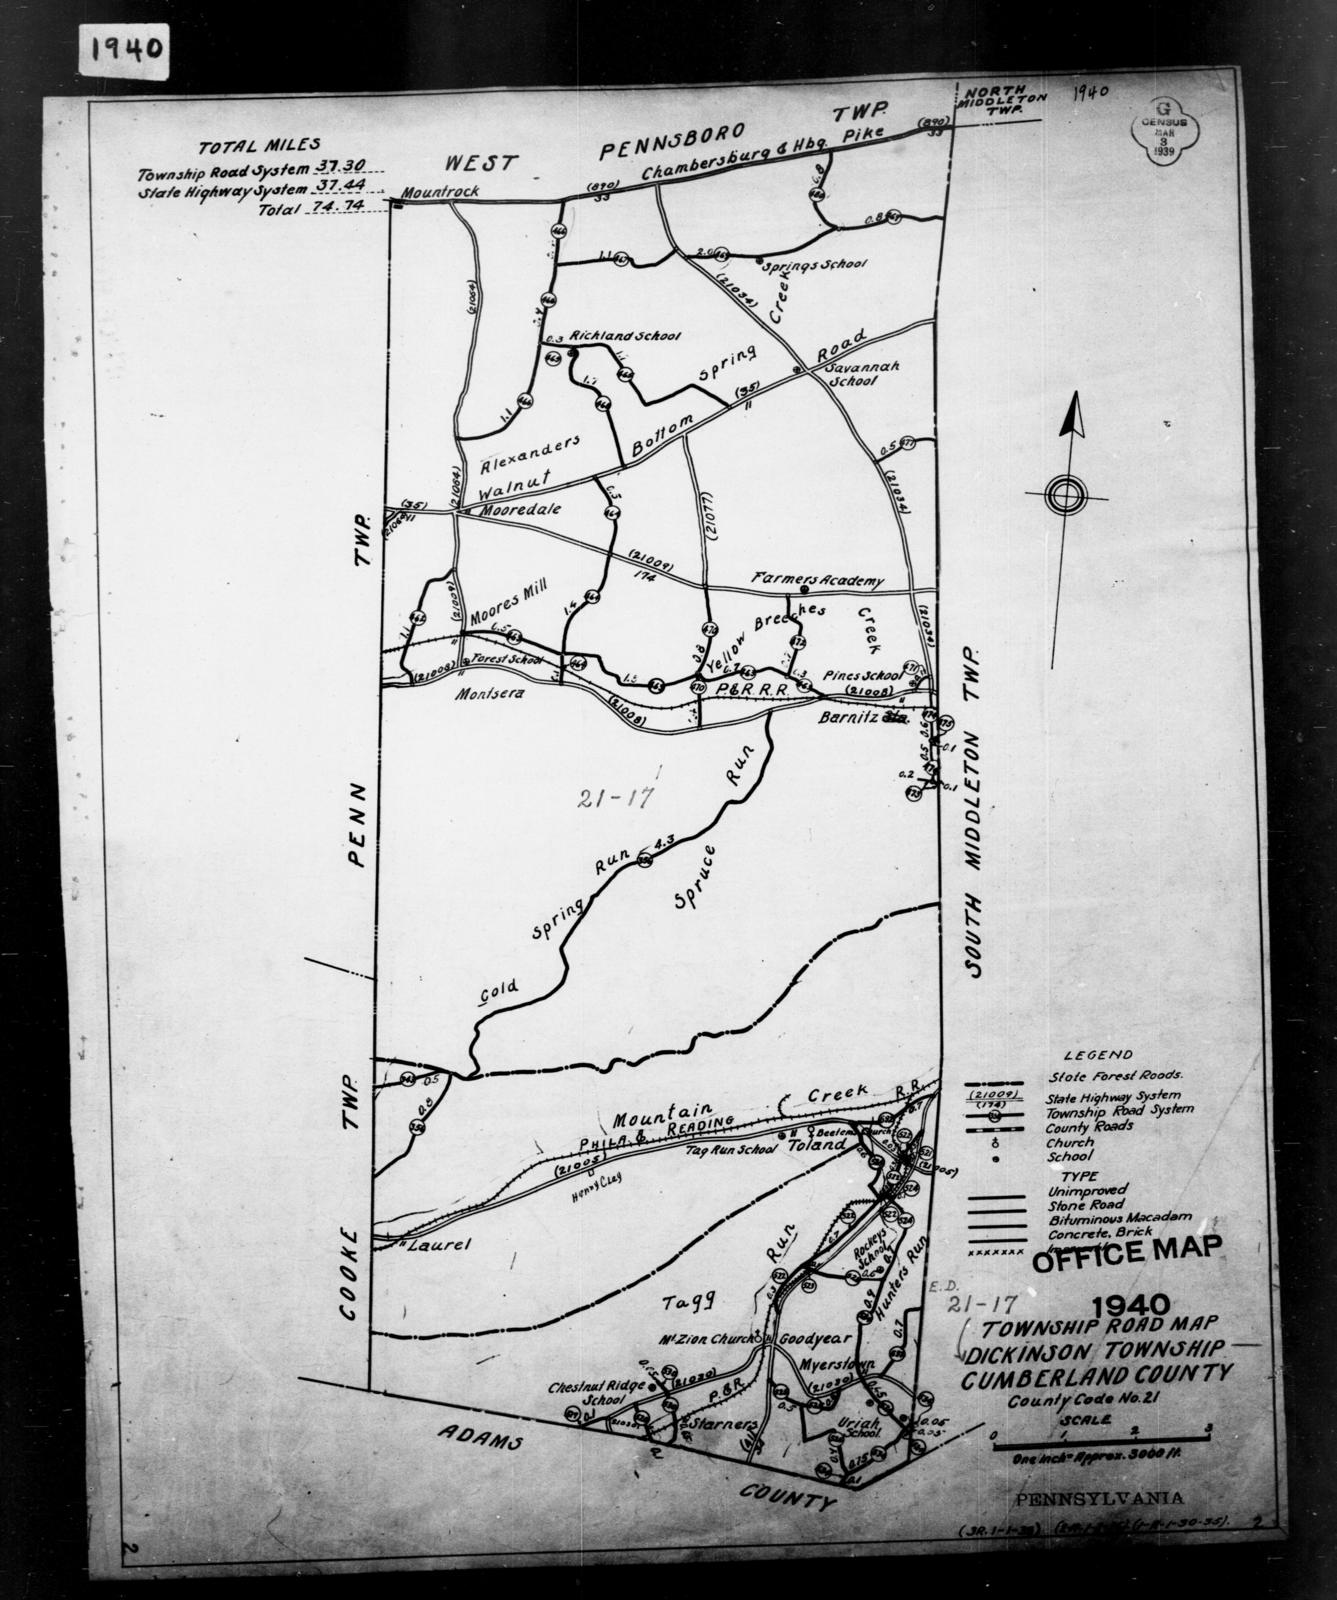 1940 Census Enumeration District Maps - Pennsylvania - berland ... on